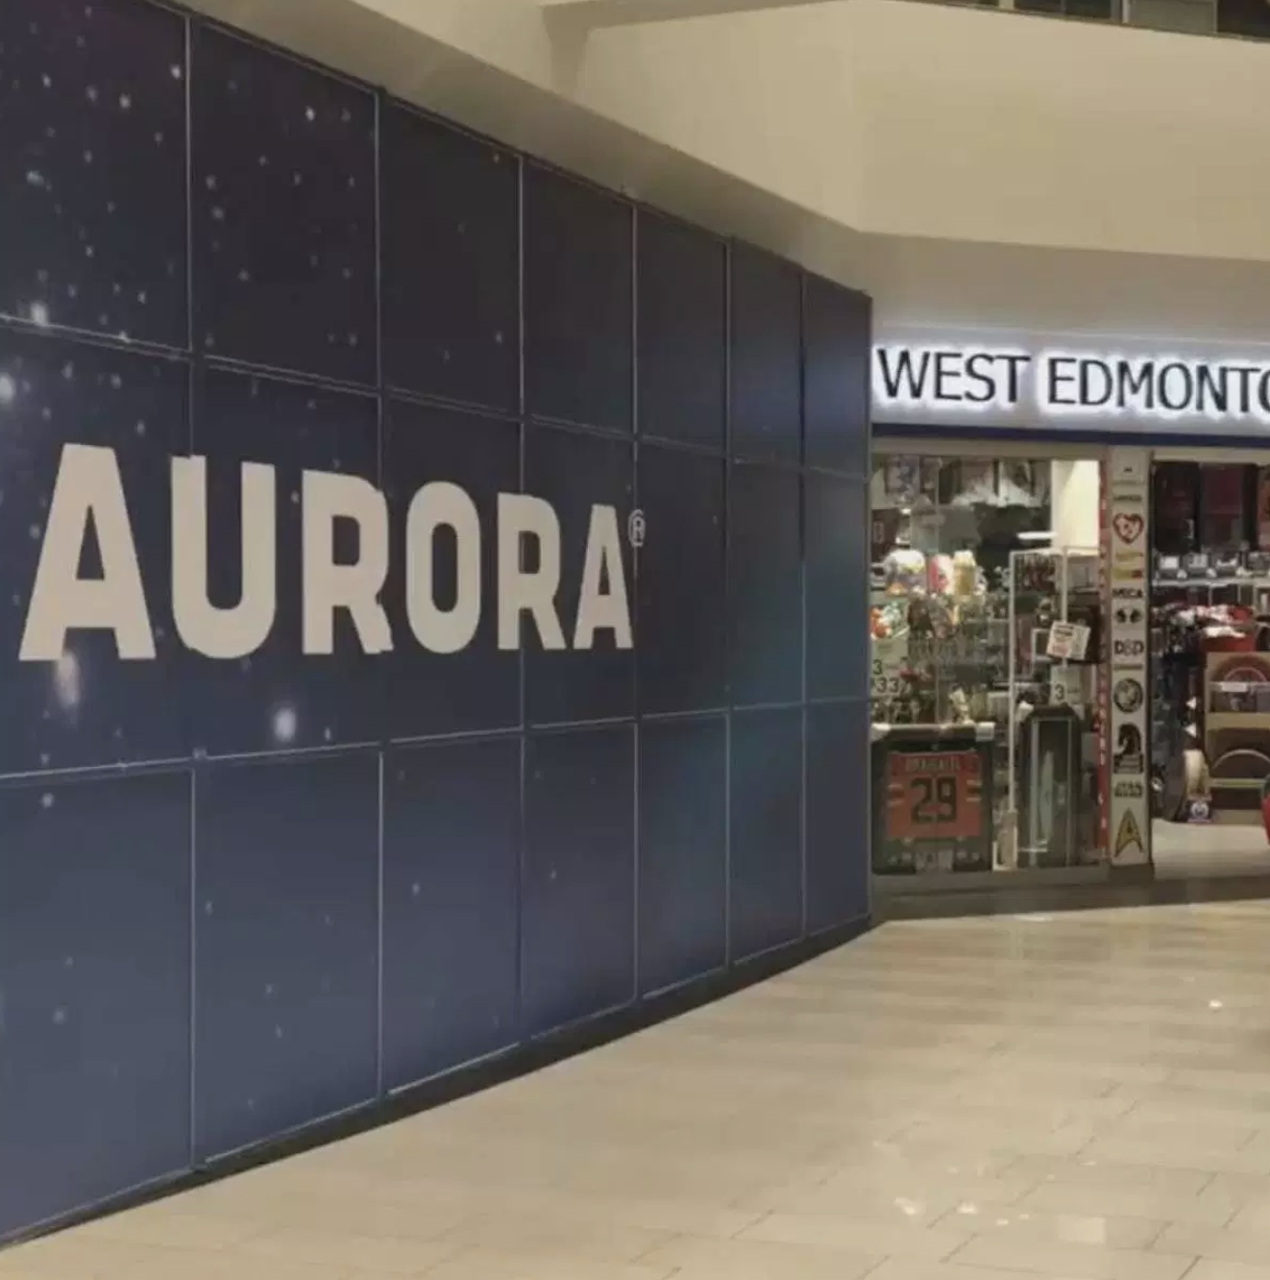 edmonton bylaw changes pot 1 - West Edmonton Mall Pot Shop? Zoning laws changed so cannabis stores can open in shopping malls